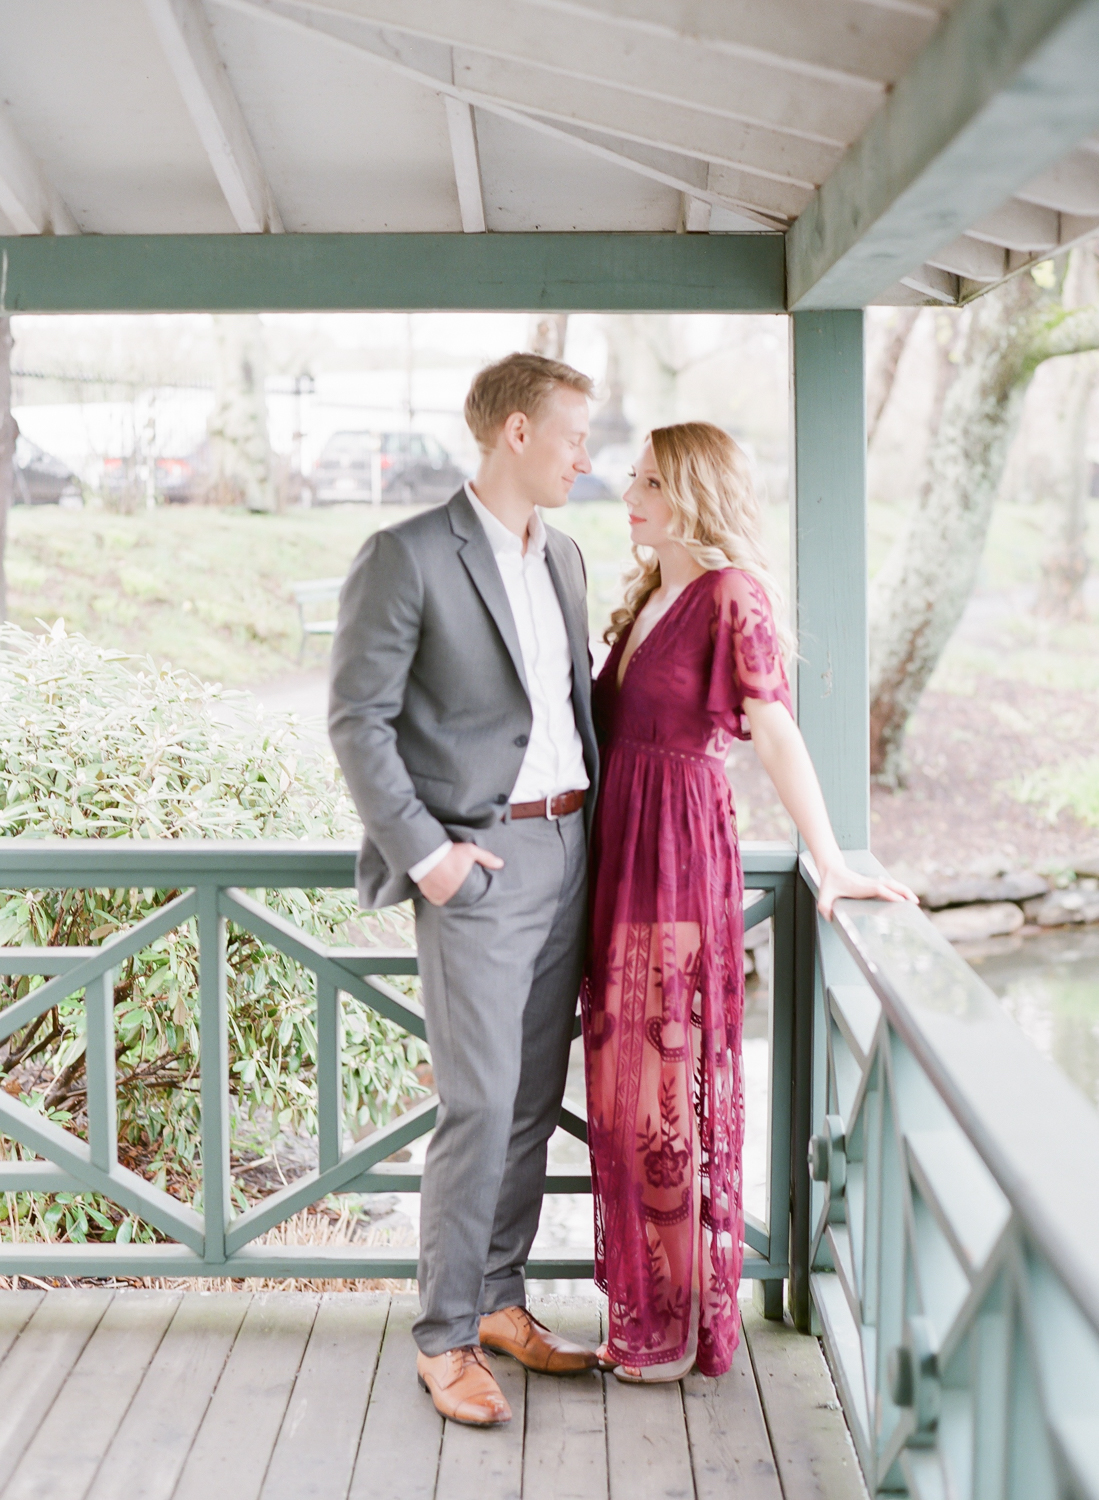 Jacqueline Anne Photography - Amanda and Brent-74.jpg